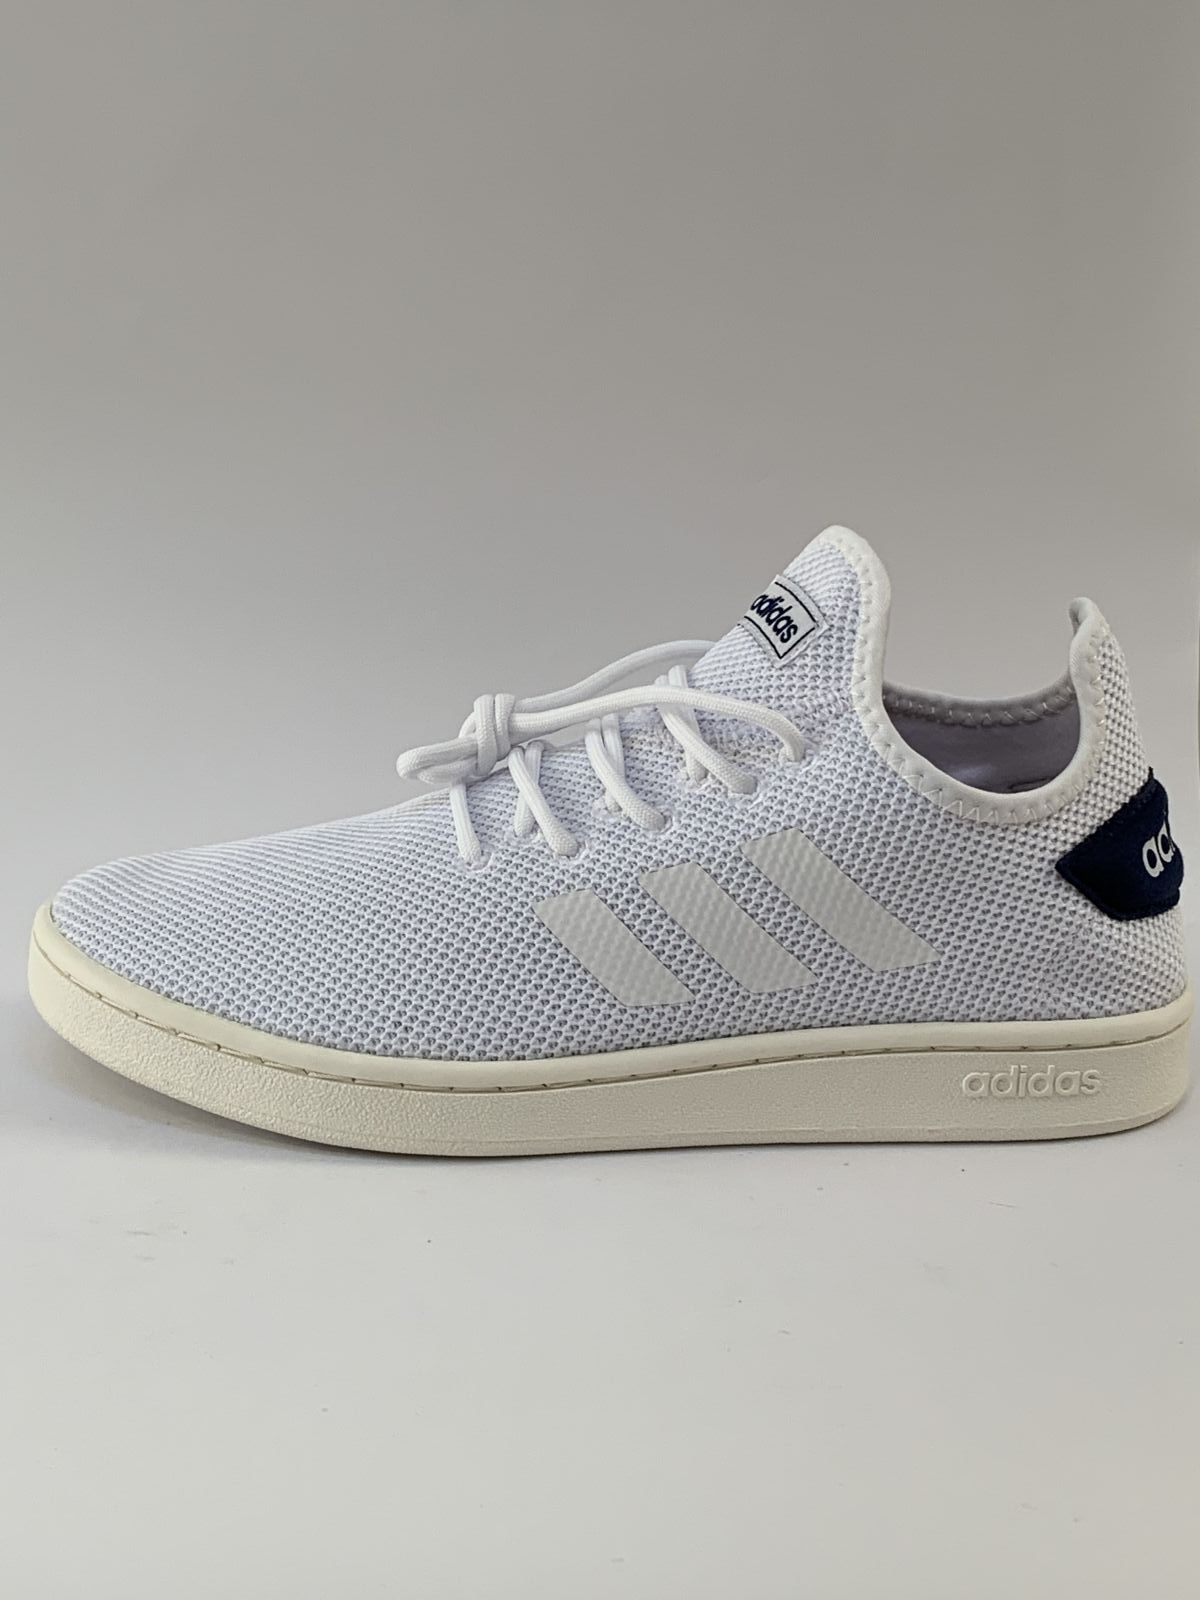 Adidas Sneaker Wit heren (Trainer Court Adapt Wit - F36416) - Schoenen Luca